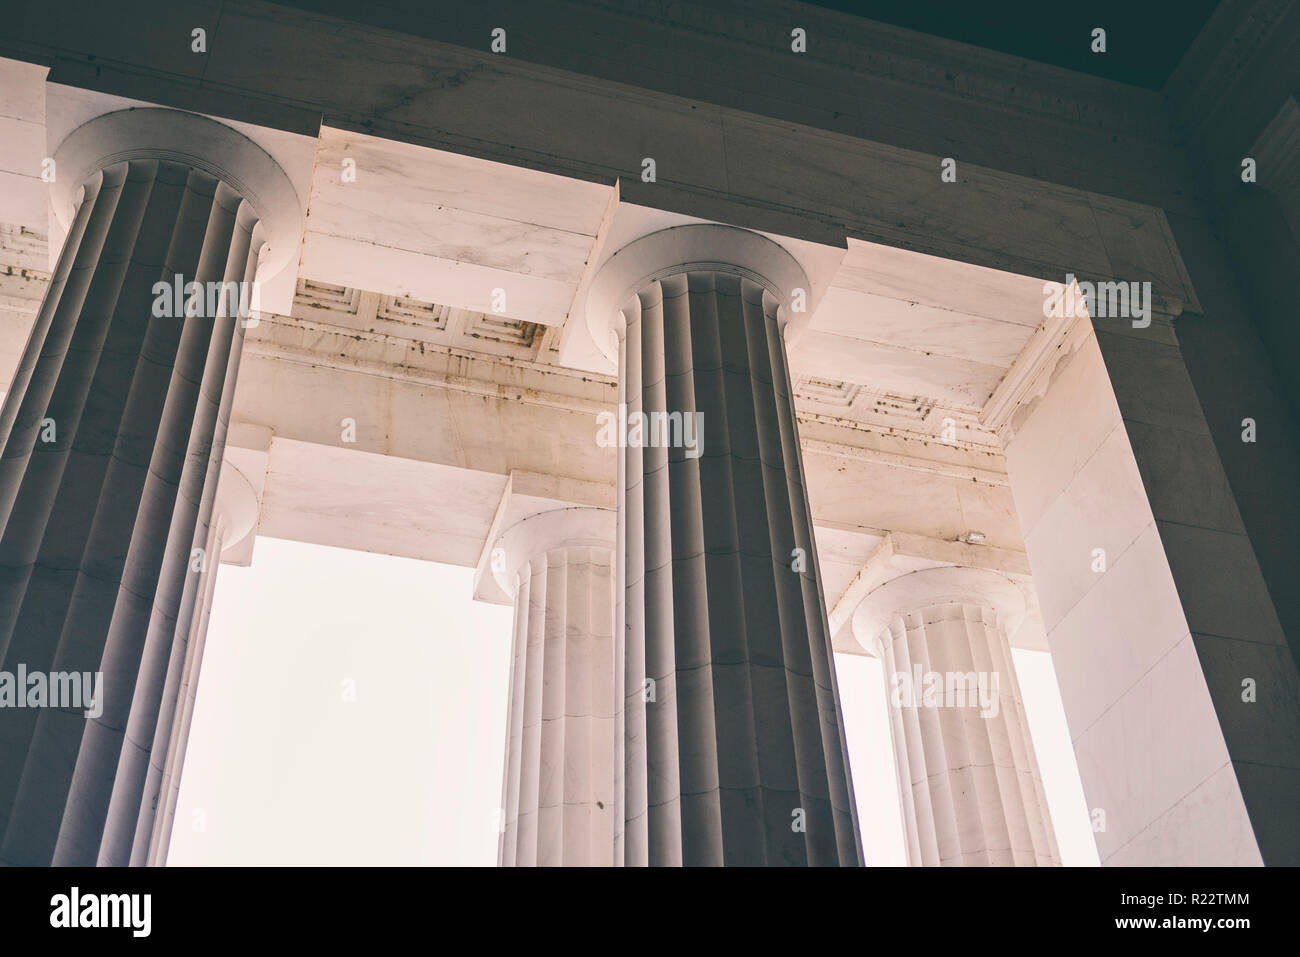 Columns on the Lincoln Memorial building - Stock Image